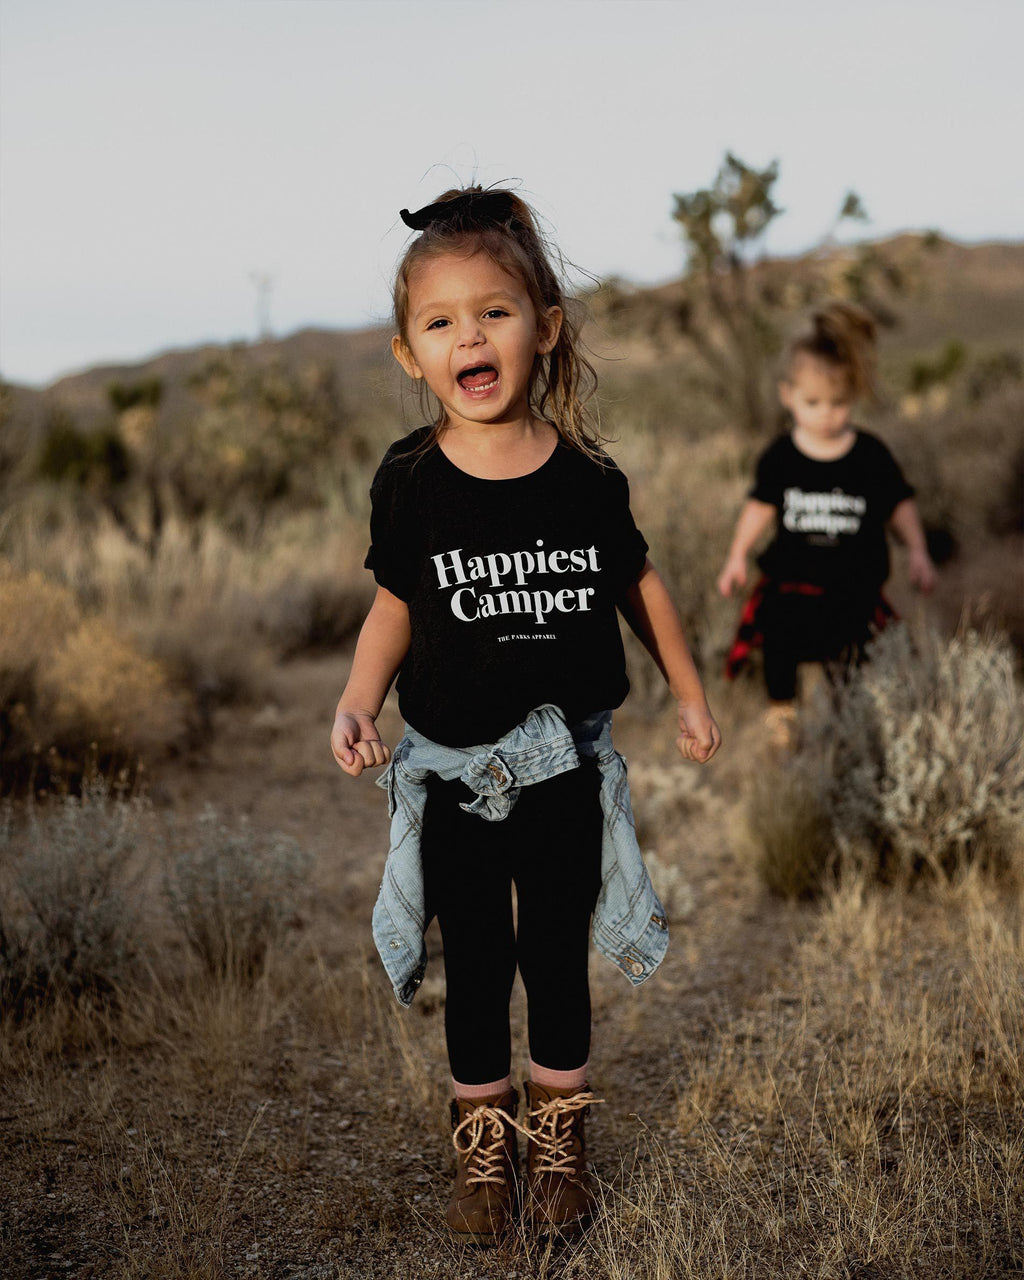 The Parks Happiest Camper Youth Tee - The Parks Apparel